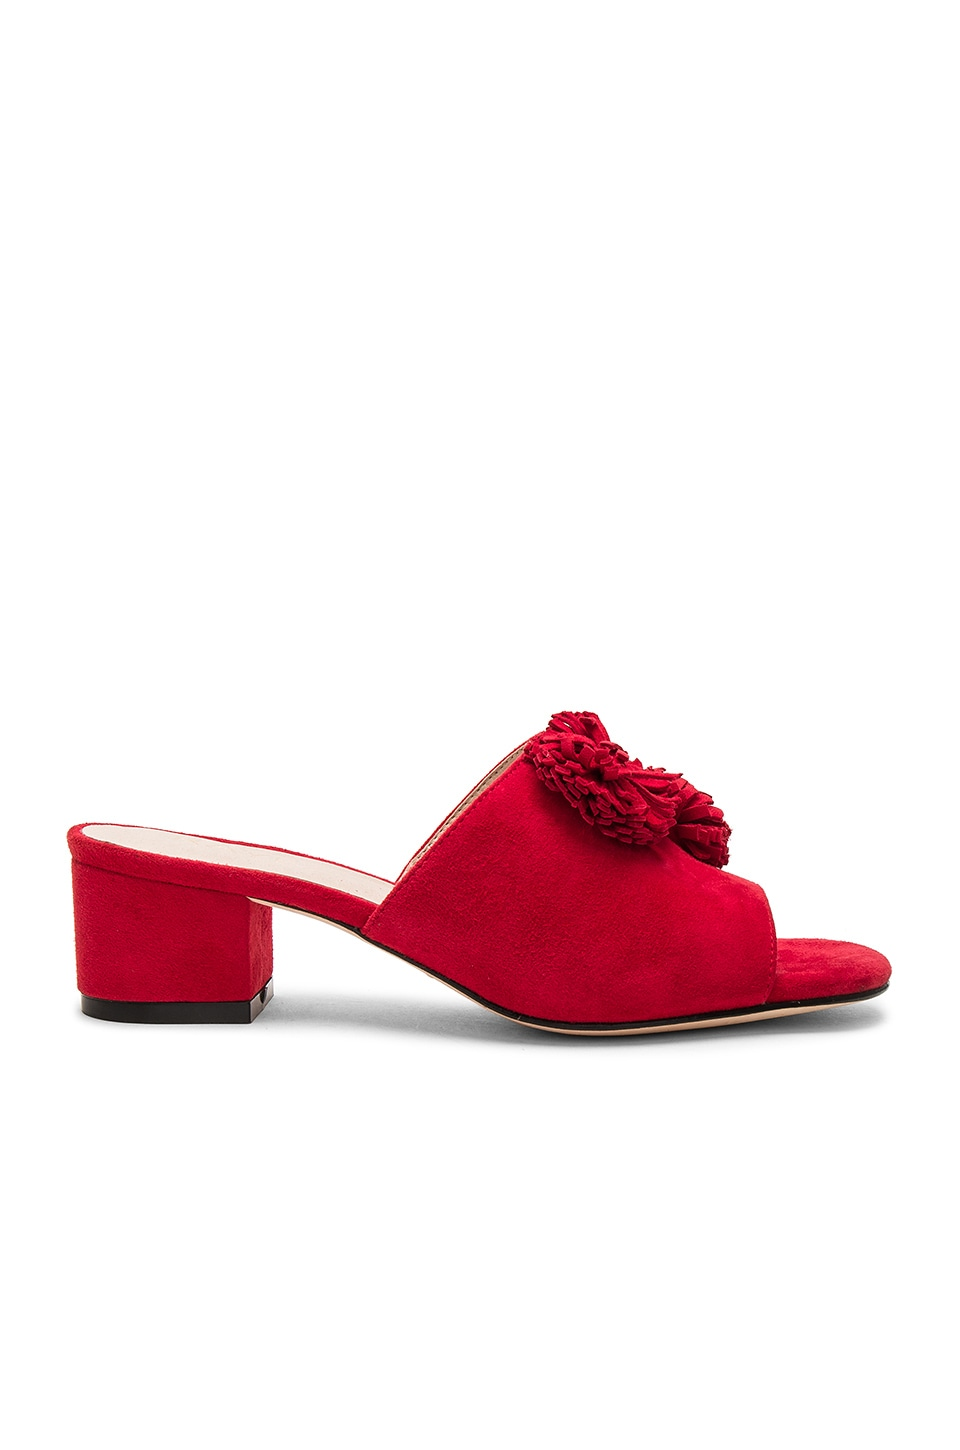 RAYE Chrissy Mule in Ruby